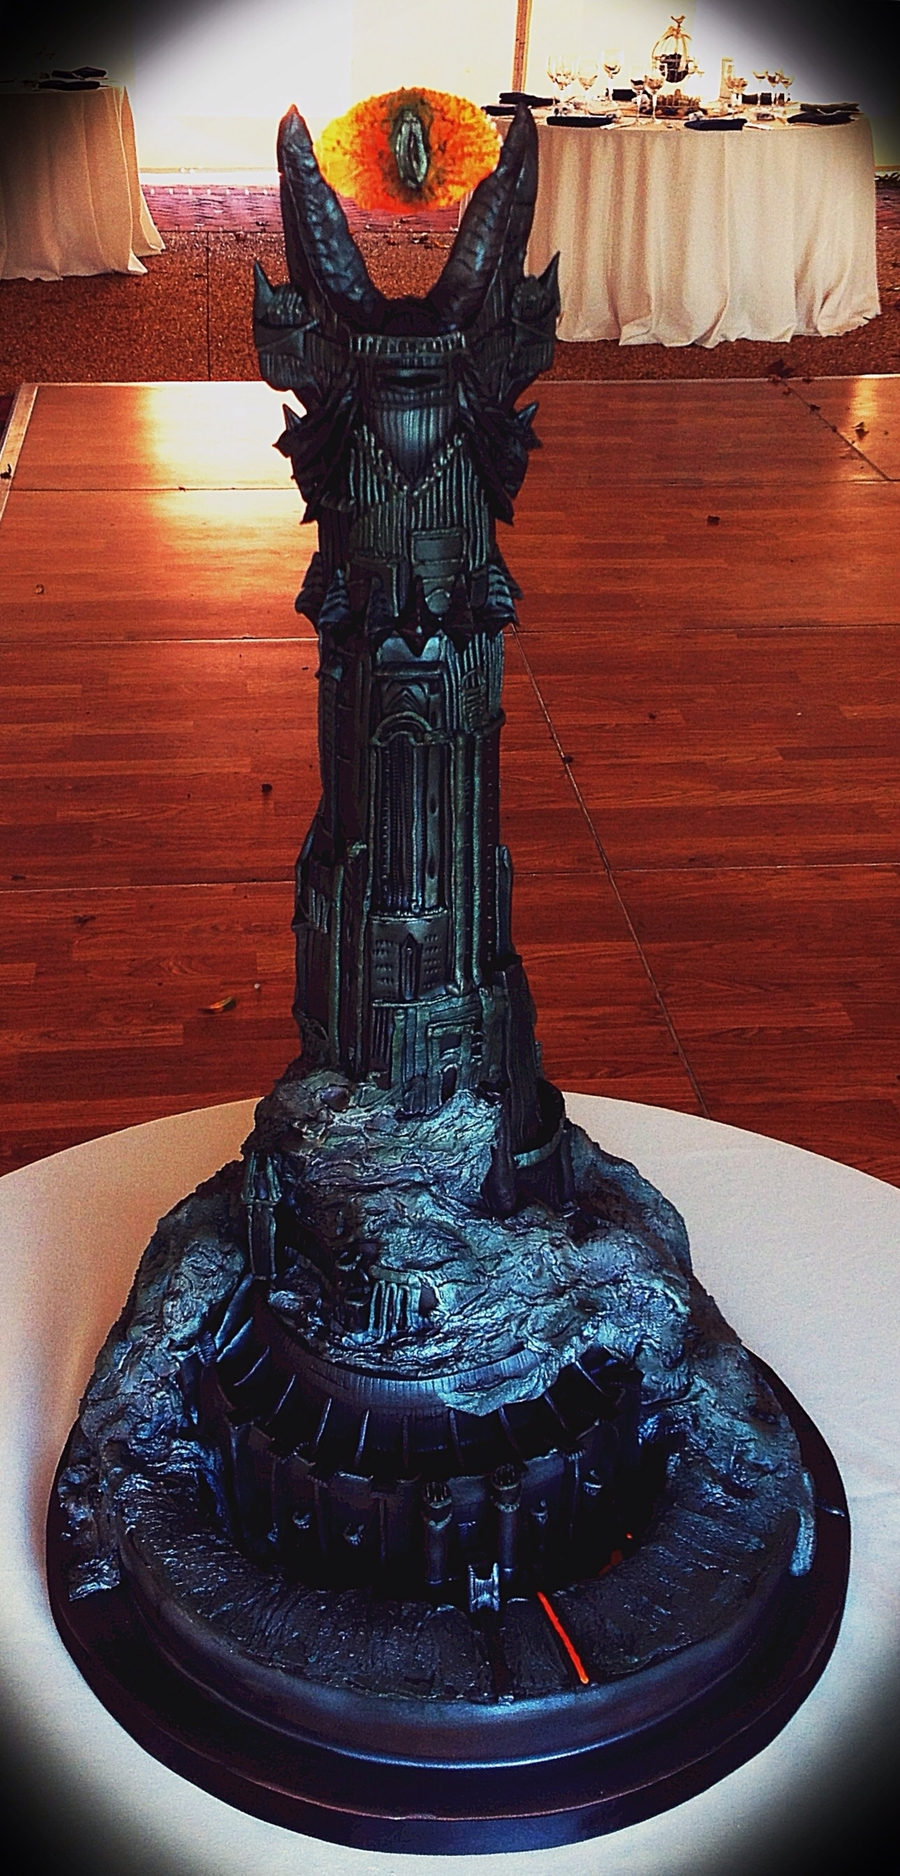 Lord Of The Rings on Cake Central